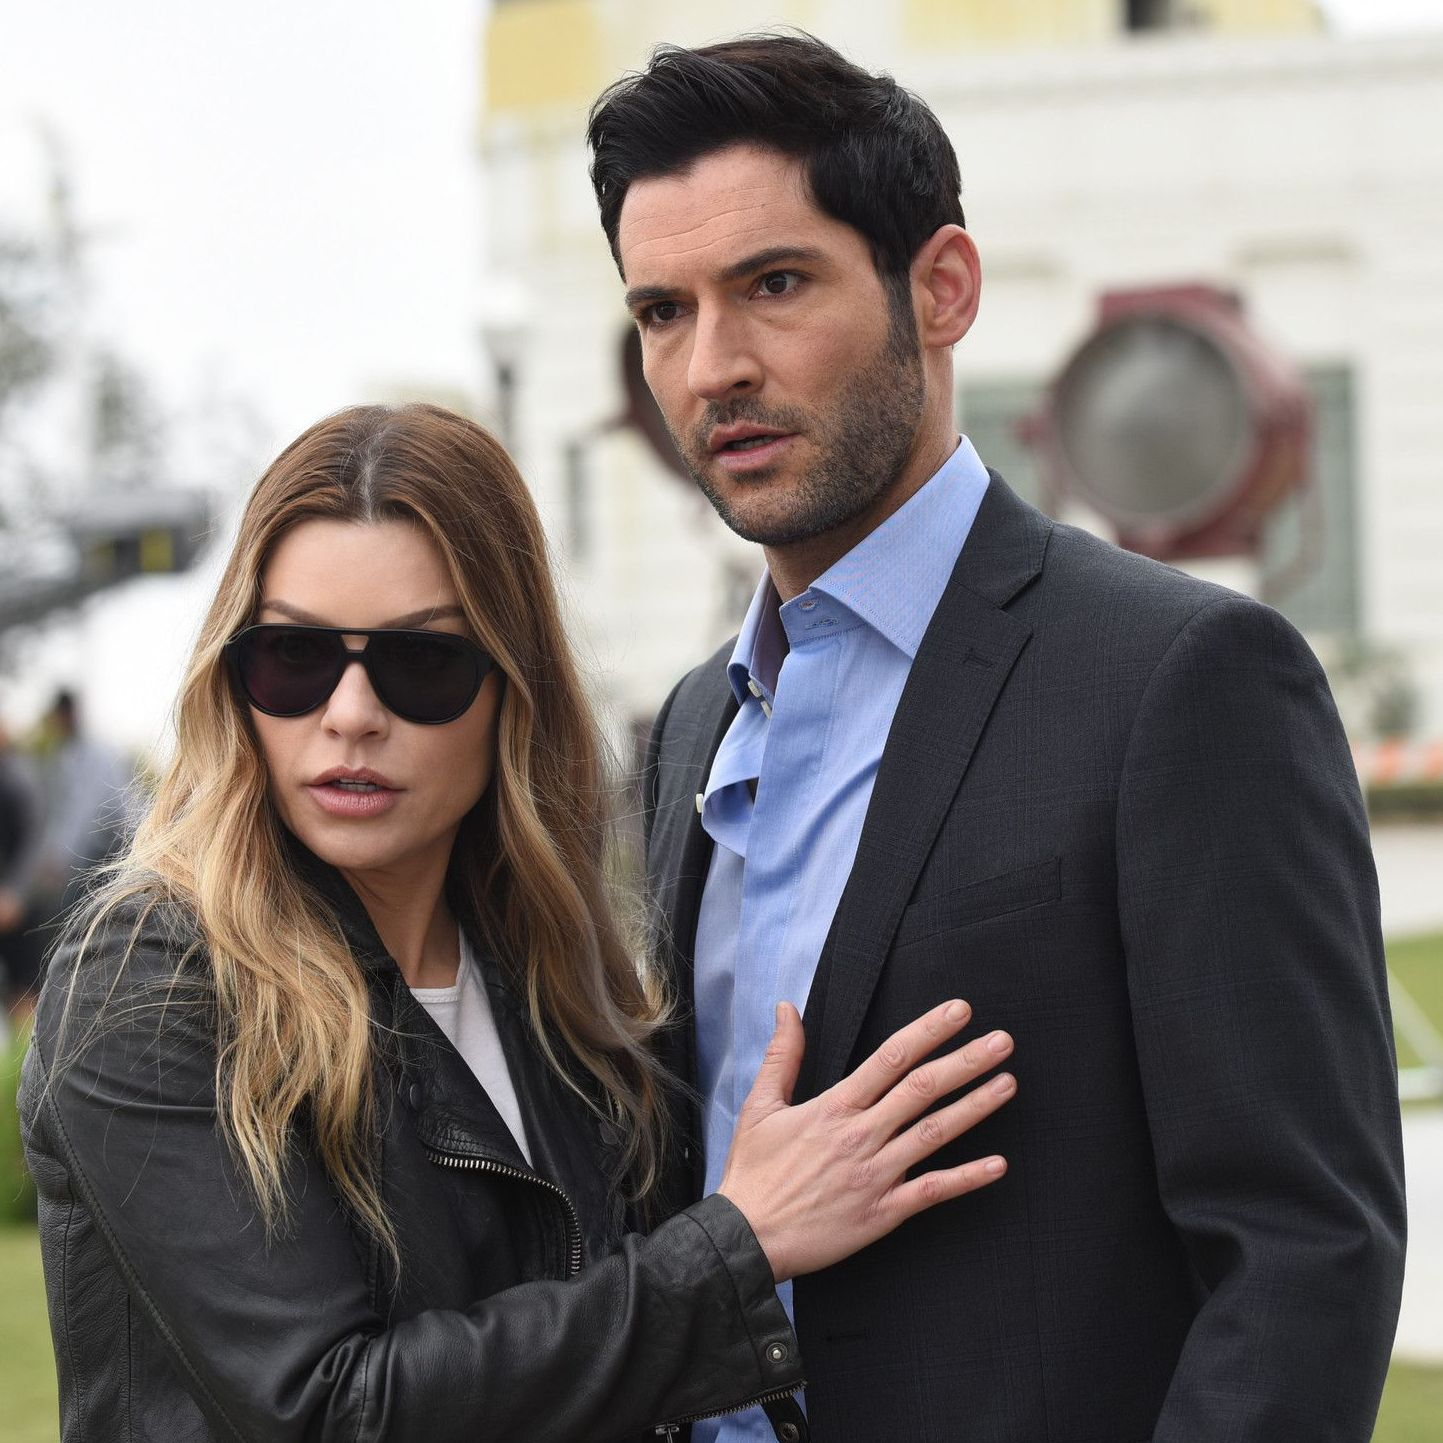 Lucifer Season 4 On Netflix: Release Date, Episodes, Cast